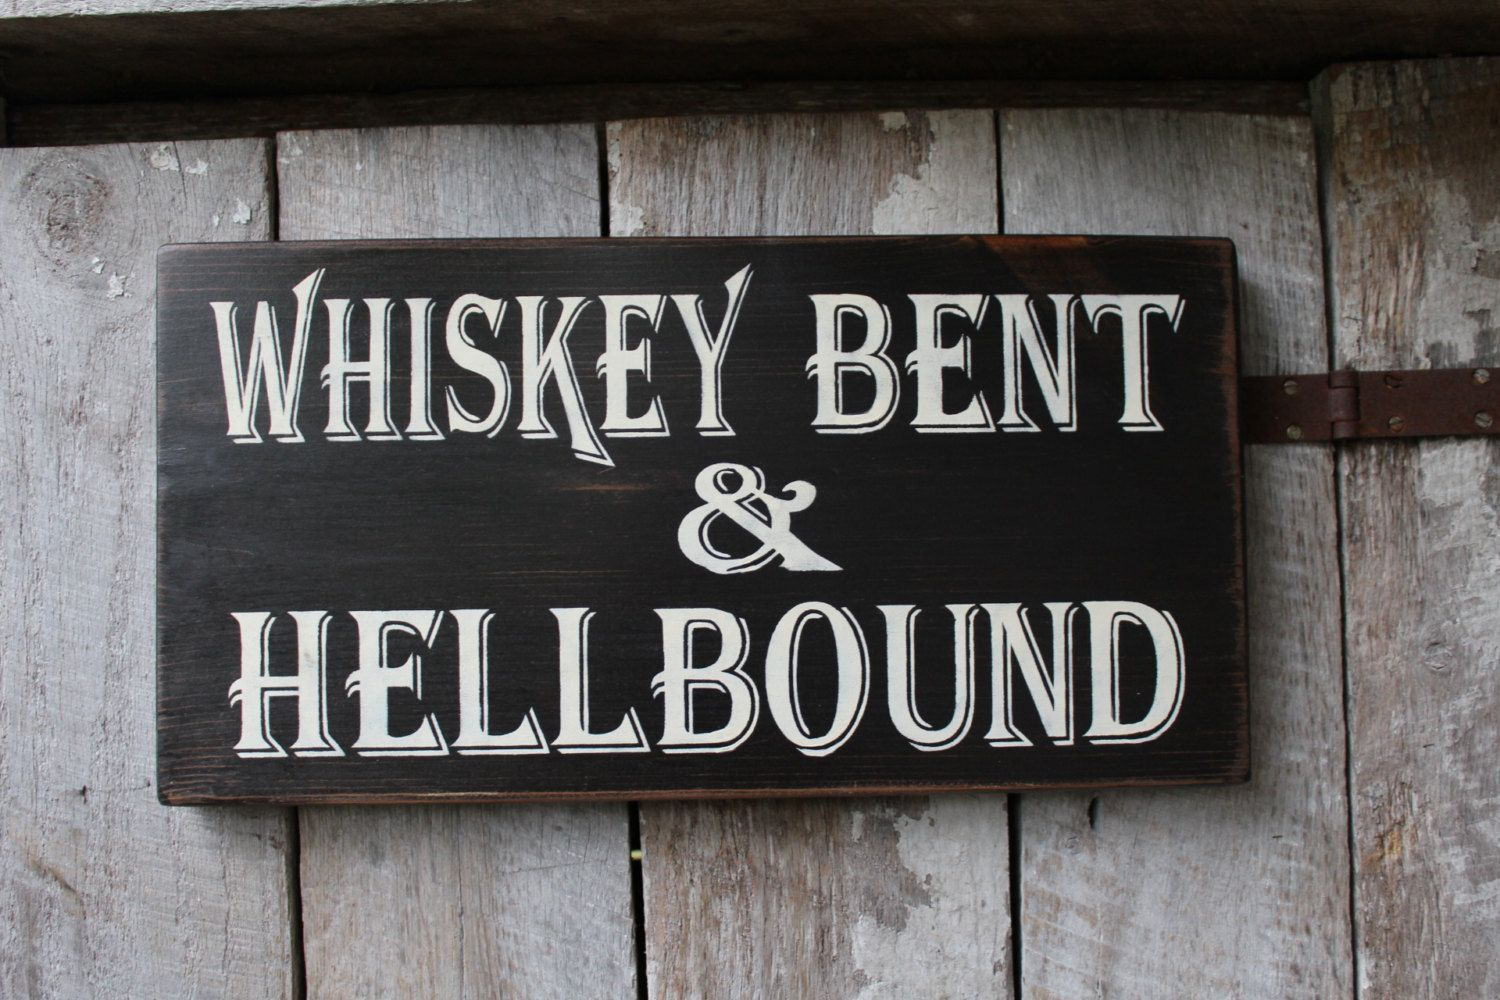 Primitive Wood Sign Whiskey Bent & Hell Bound Bar Decor Lyrics Stage Hippie Weed Cabin Rustic Man Cave Patio Decor Biker Outlaw Rocker #mancave